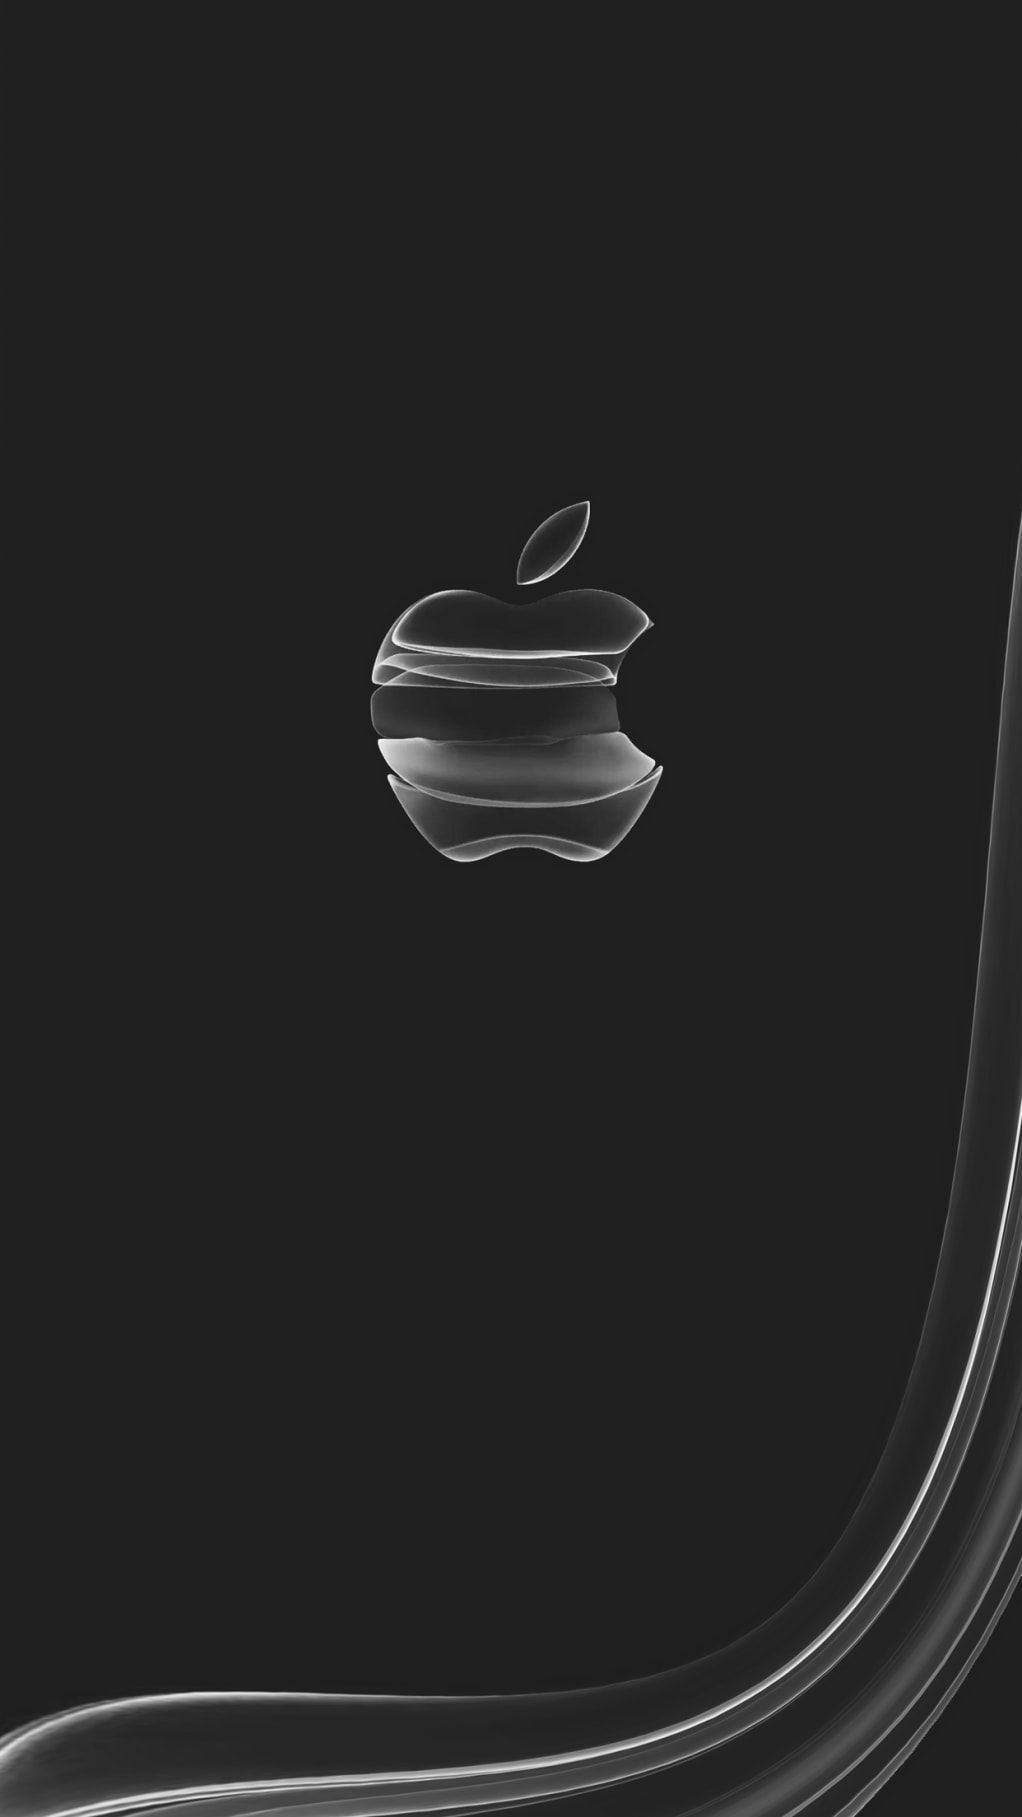 Apple Event Inspired Wallpapers For Iphone Ipad In 2020 Apple Logo Wallpaper Iphone Apple Logo Wallpaper Apple Wallpaper